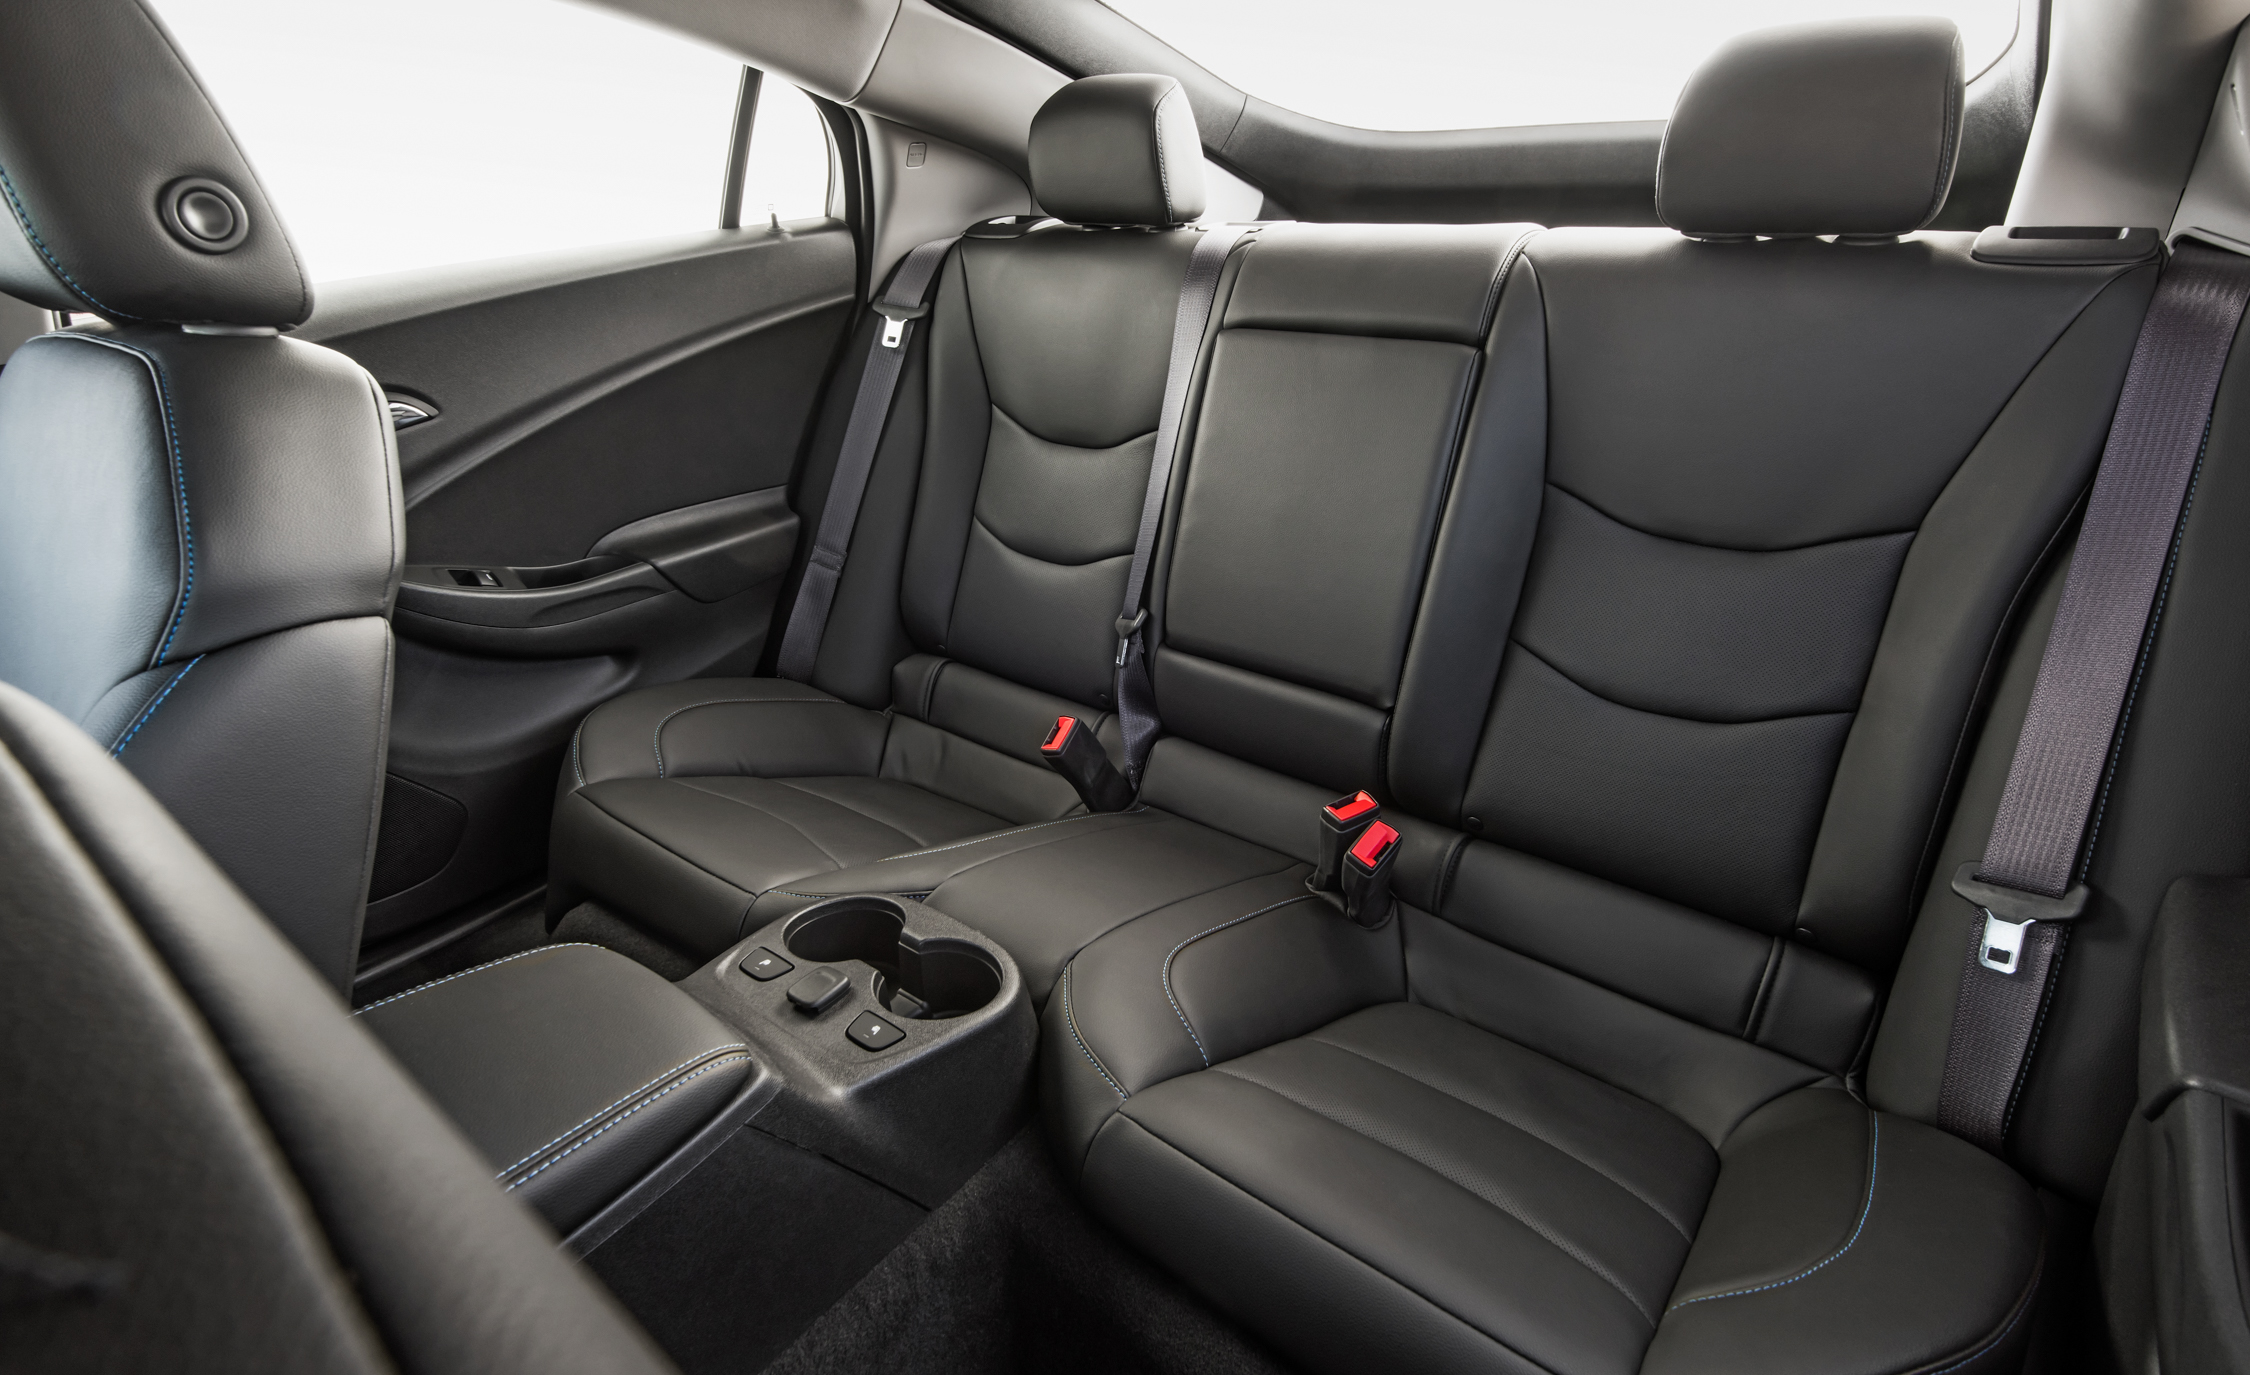 2017 Chevrolet Volt Interior Seats Rear (Photo 10 of 16)